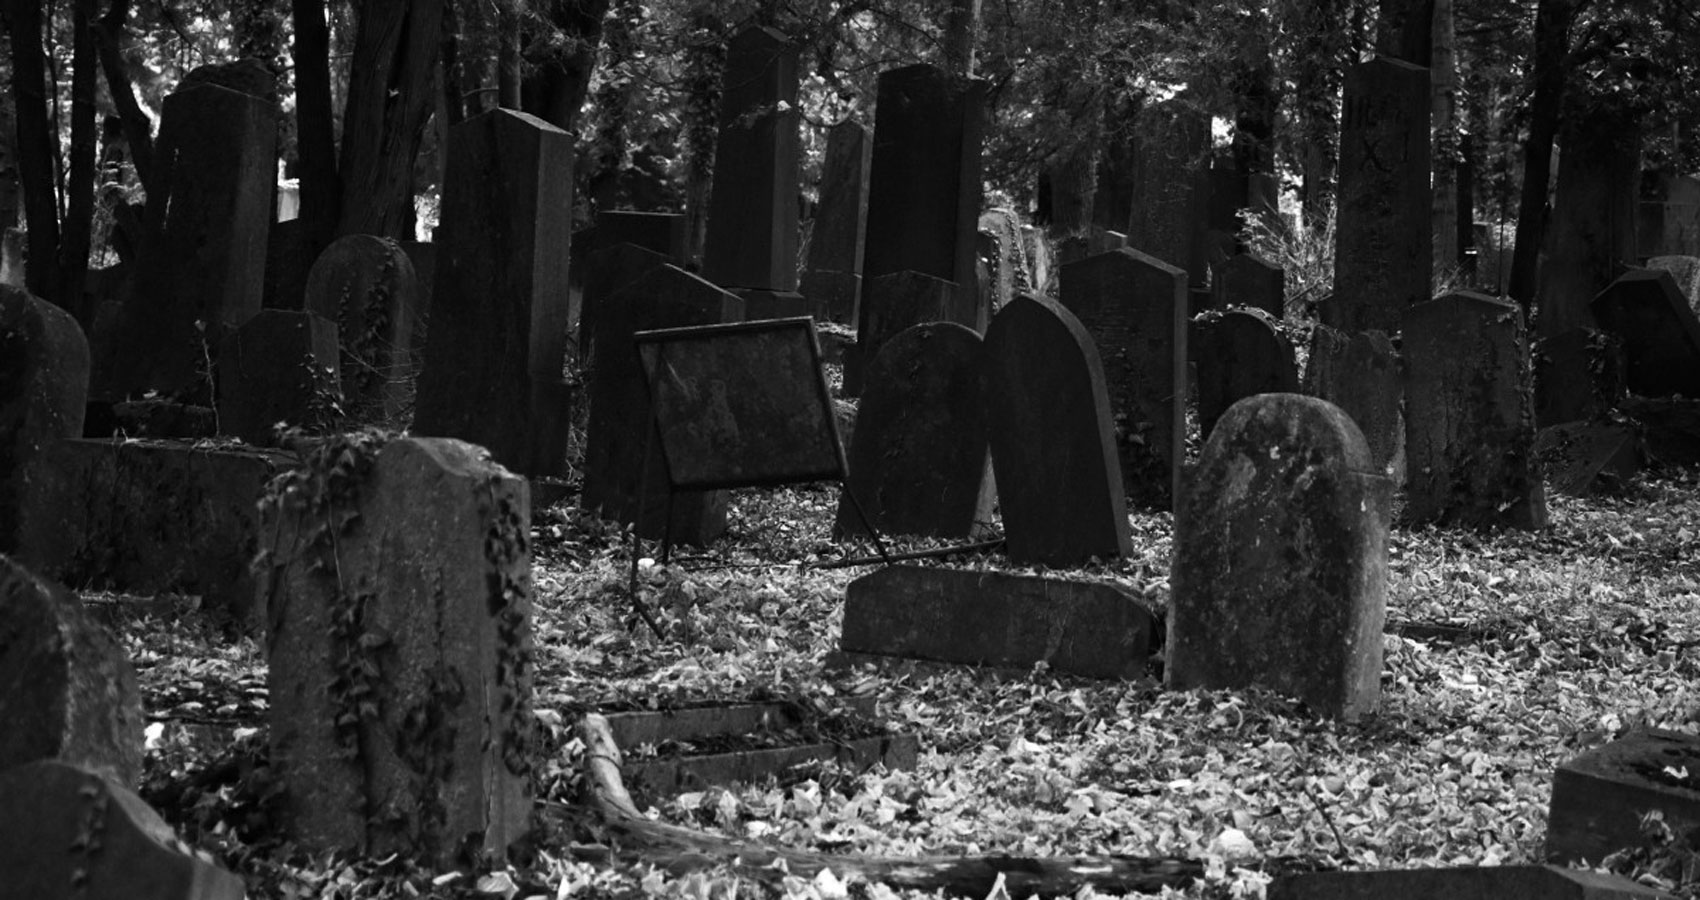 Grave, a poem written by Jack Wolfe Frost at Spillwords.com